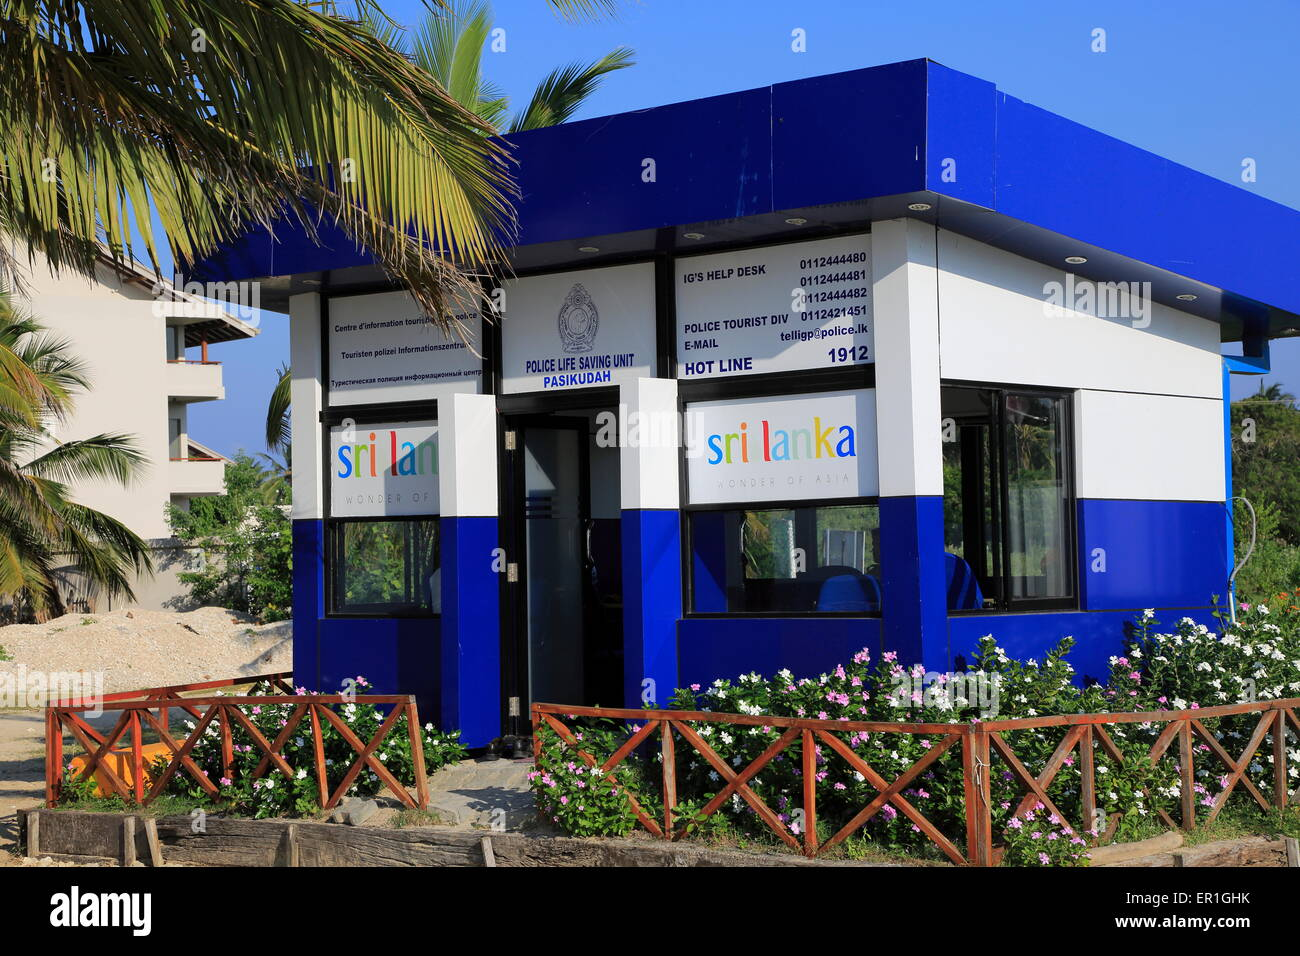 Seaside Police Stock Photos & Seaside Police Stock Images - Alamy on small house designs in philippines, small house designs in pakistan, small house designs in france,